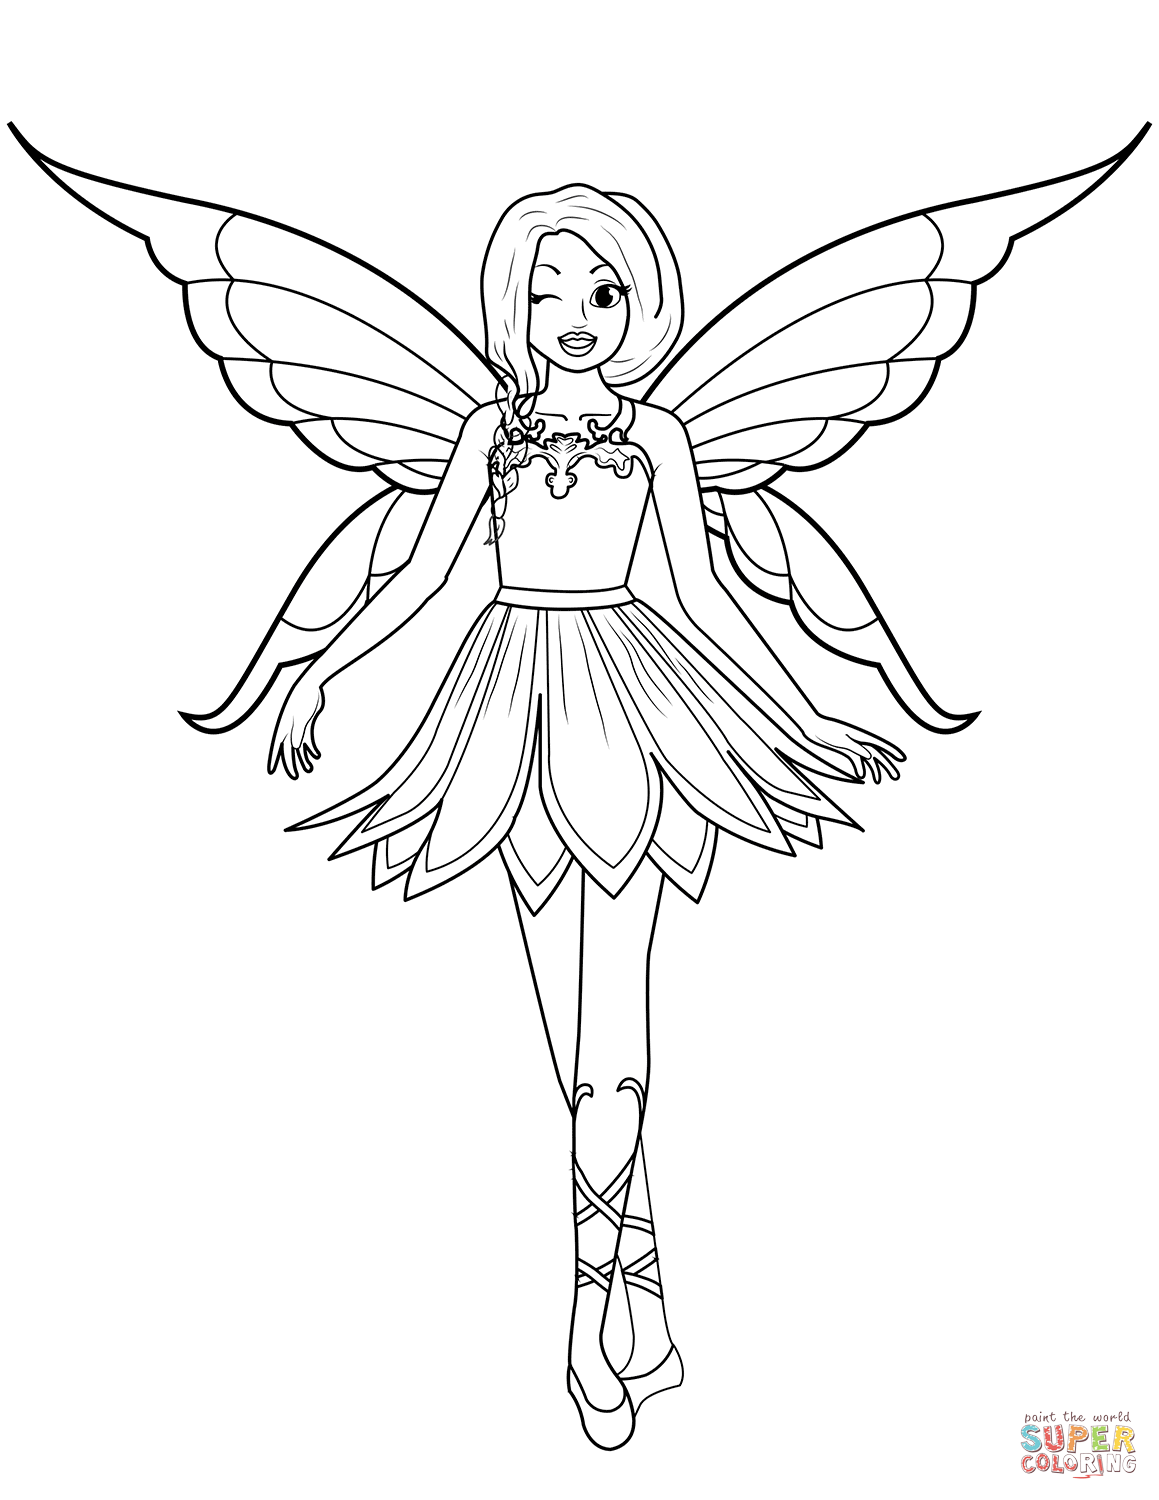 Free Coloring Pages Download Winking Fairy Page Printable Of